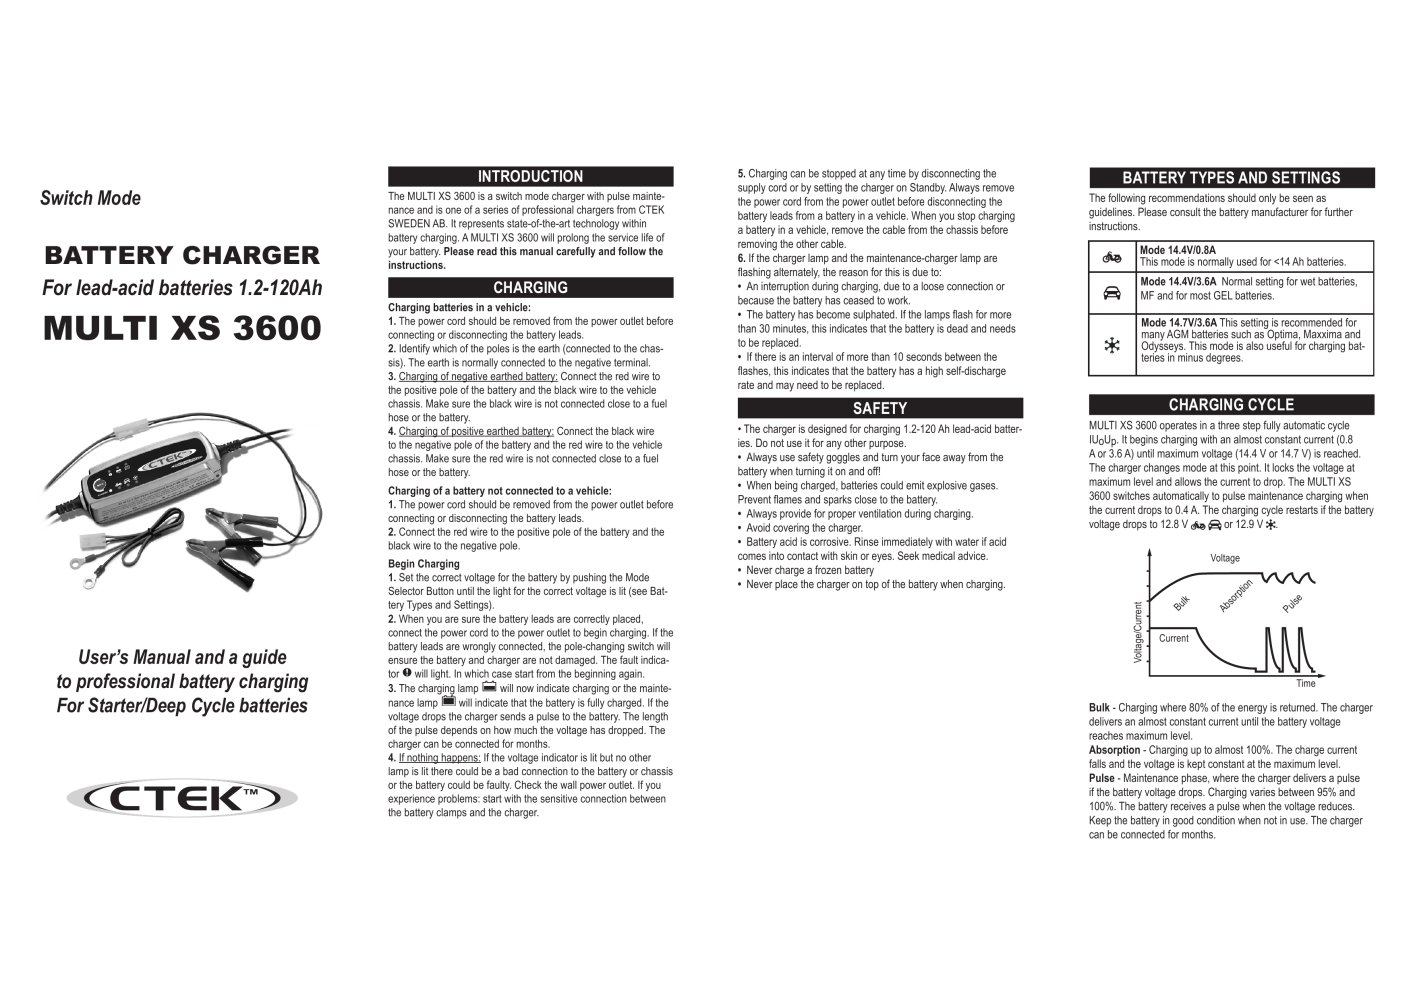 Ctek xs7000 charger user manual by talk audio online issuu.